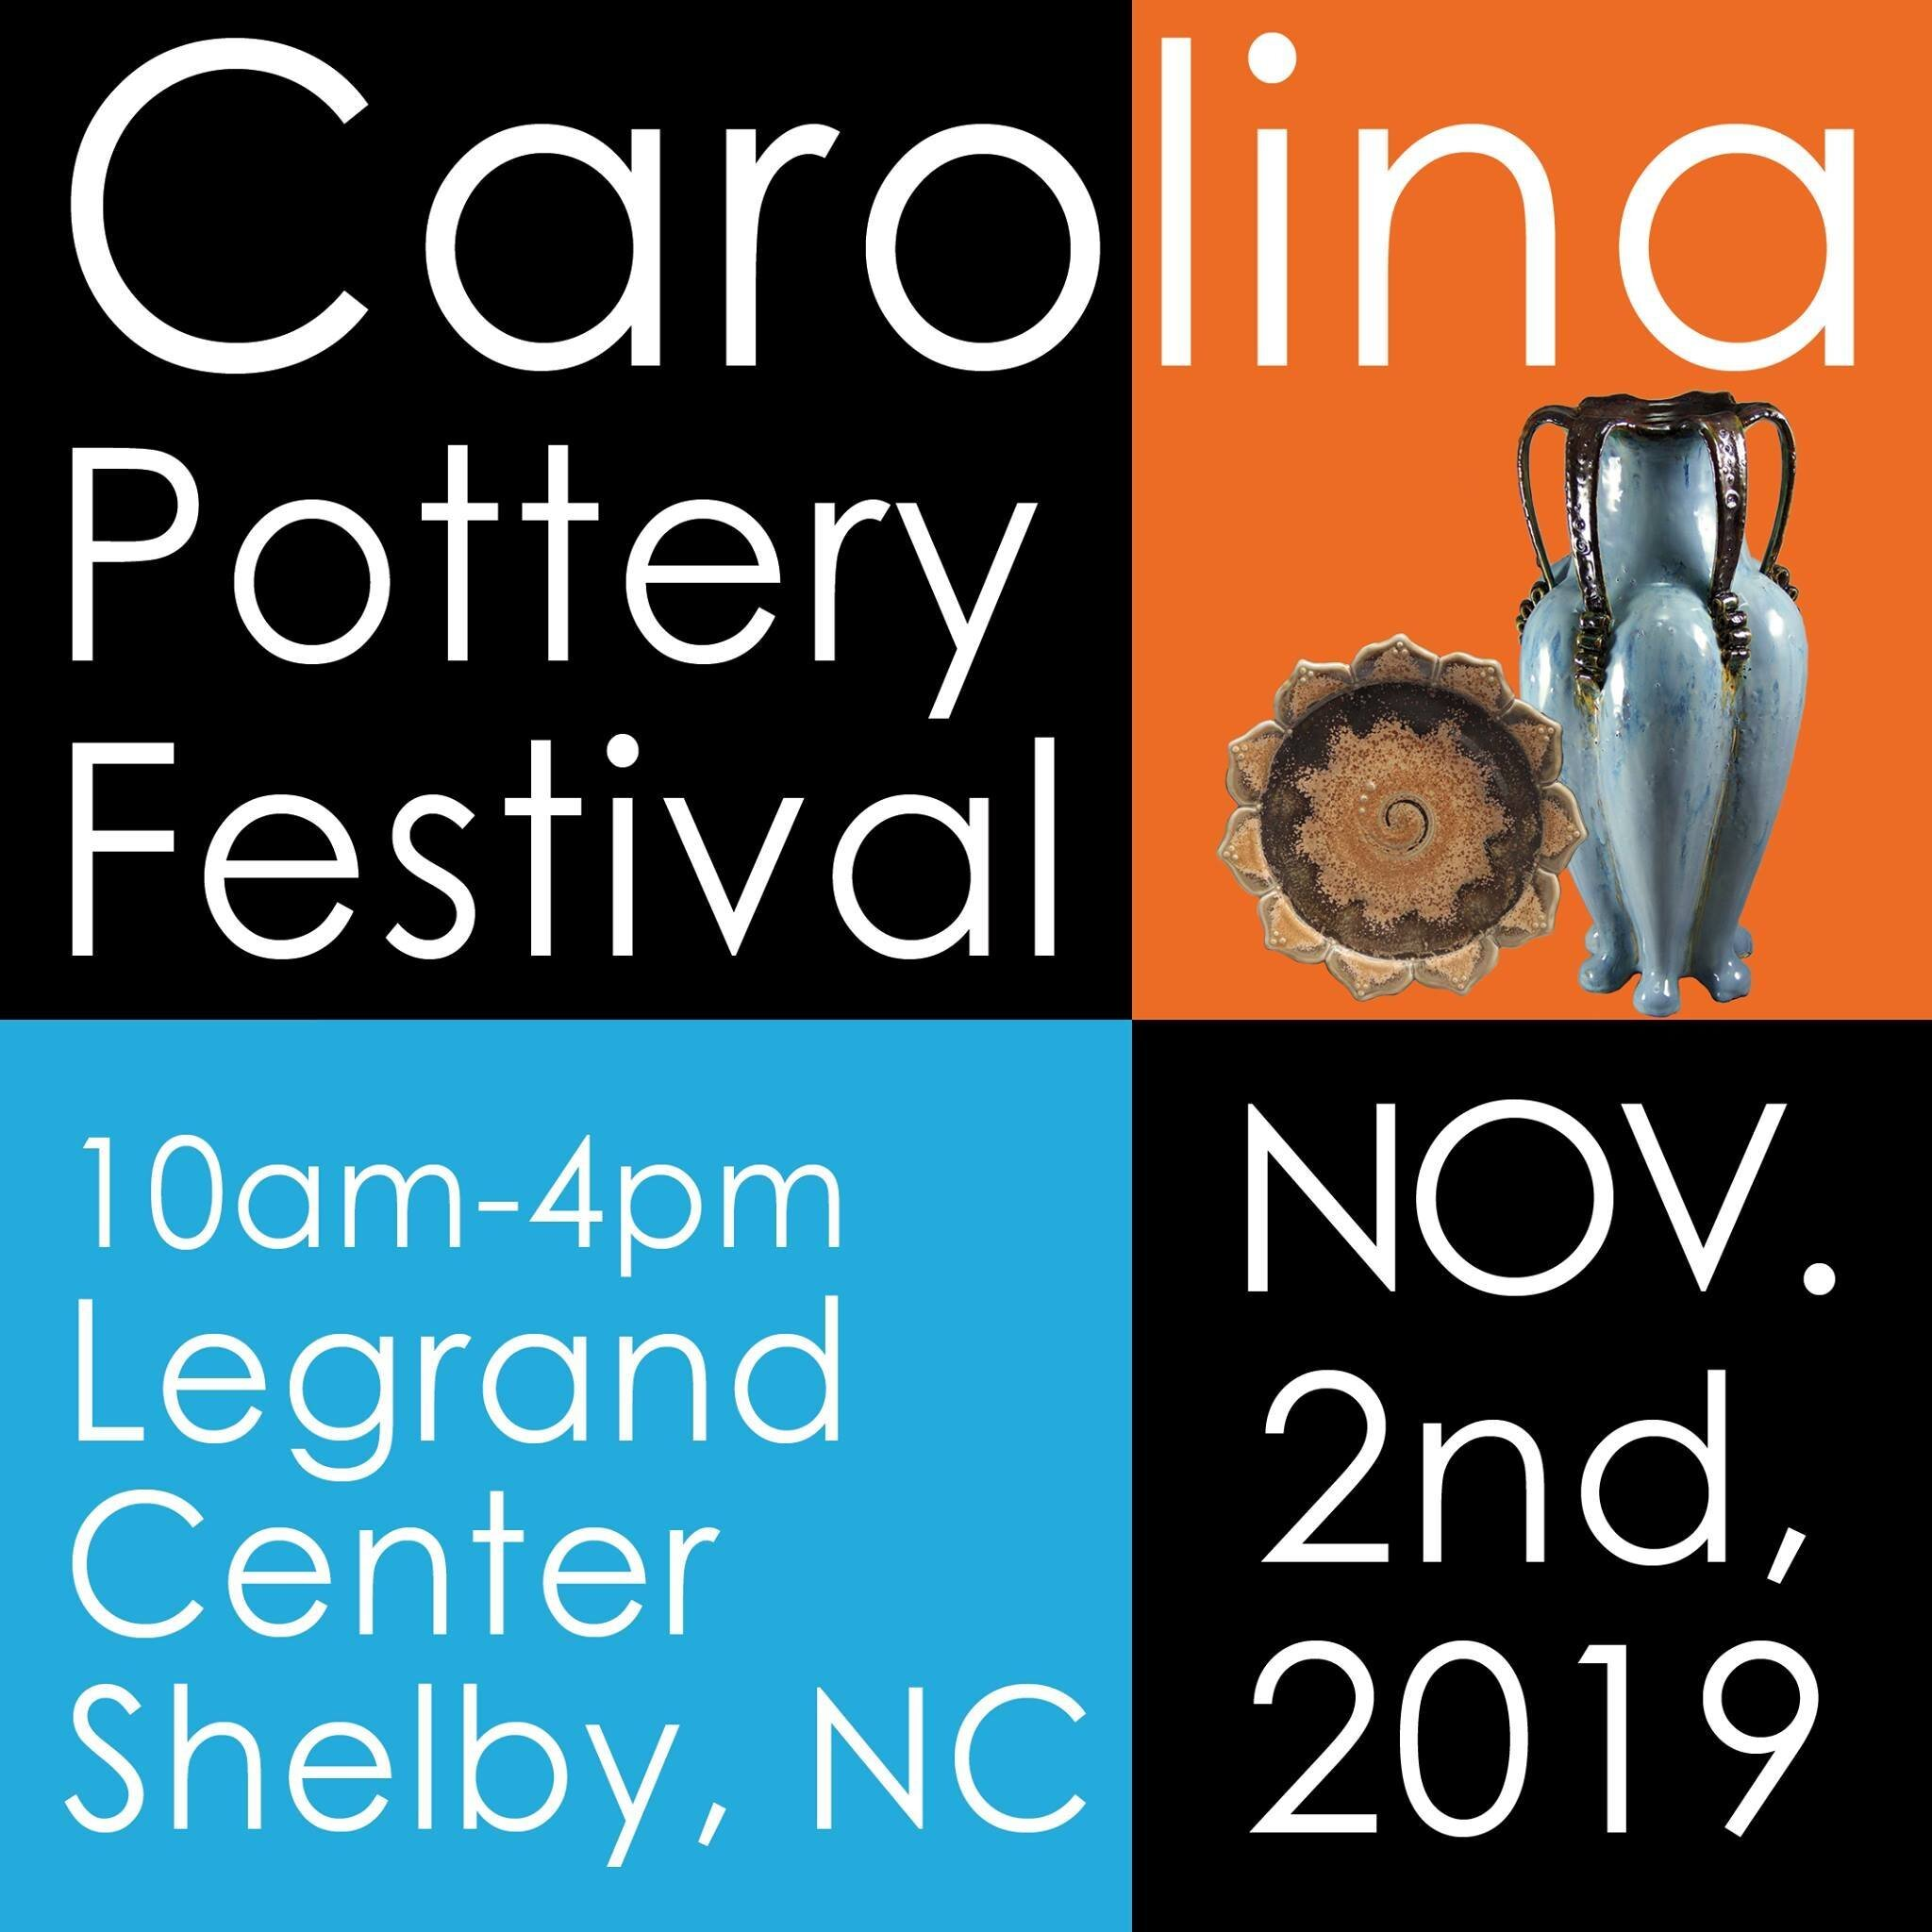 Carolina Pottery Festival - Carolina Pottery FestivalNovember 2nd, 2019Shelby, North CarolinaHeld in Shelby since 2001. One hundred of the finest potters and ceramic artists in a three state area convene at the LeGrand Center in Shelby, NC to show and sell their handmade pottery. The opportunity to meet and talk with the artists on site make this day special for all who attend. And just in time for holiday shopping!www.ccartscouncil.org/Events.htmwww.facebook.com/CarolinaPotteryFestival